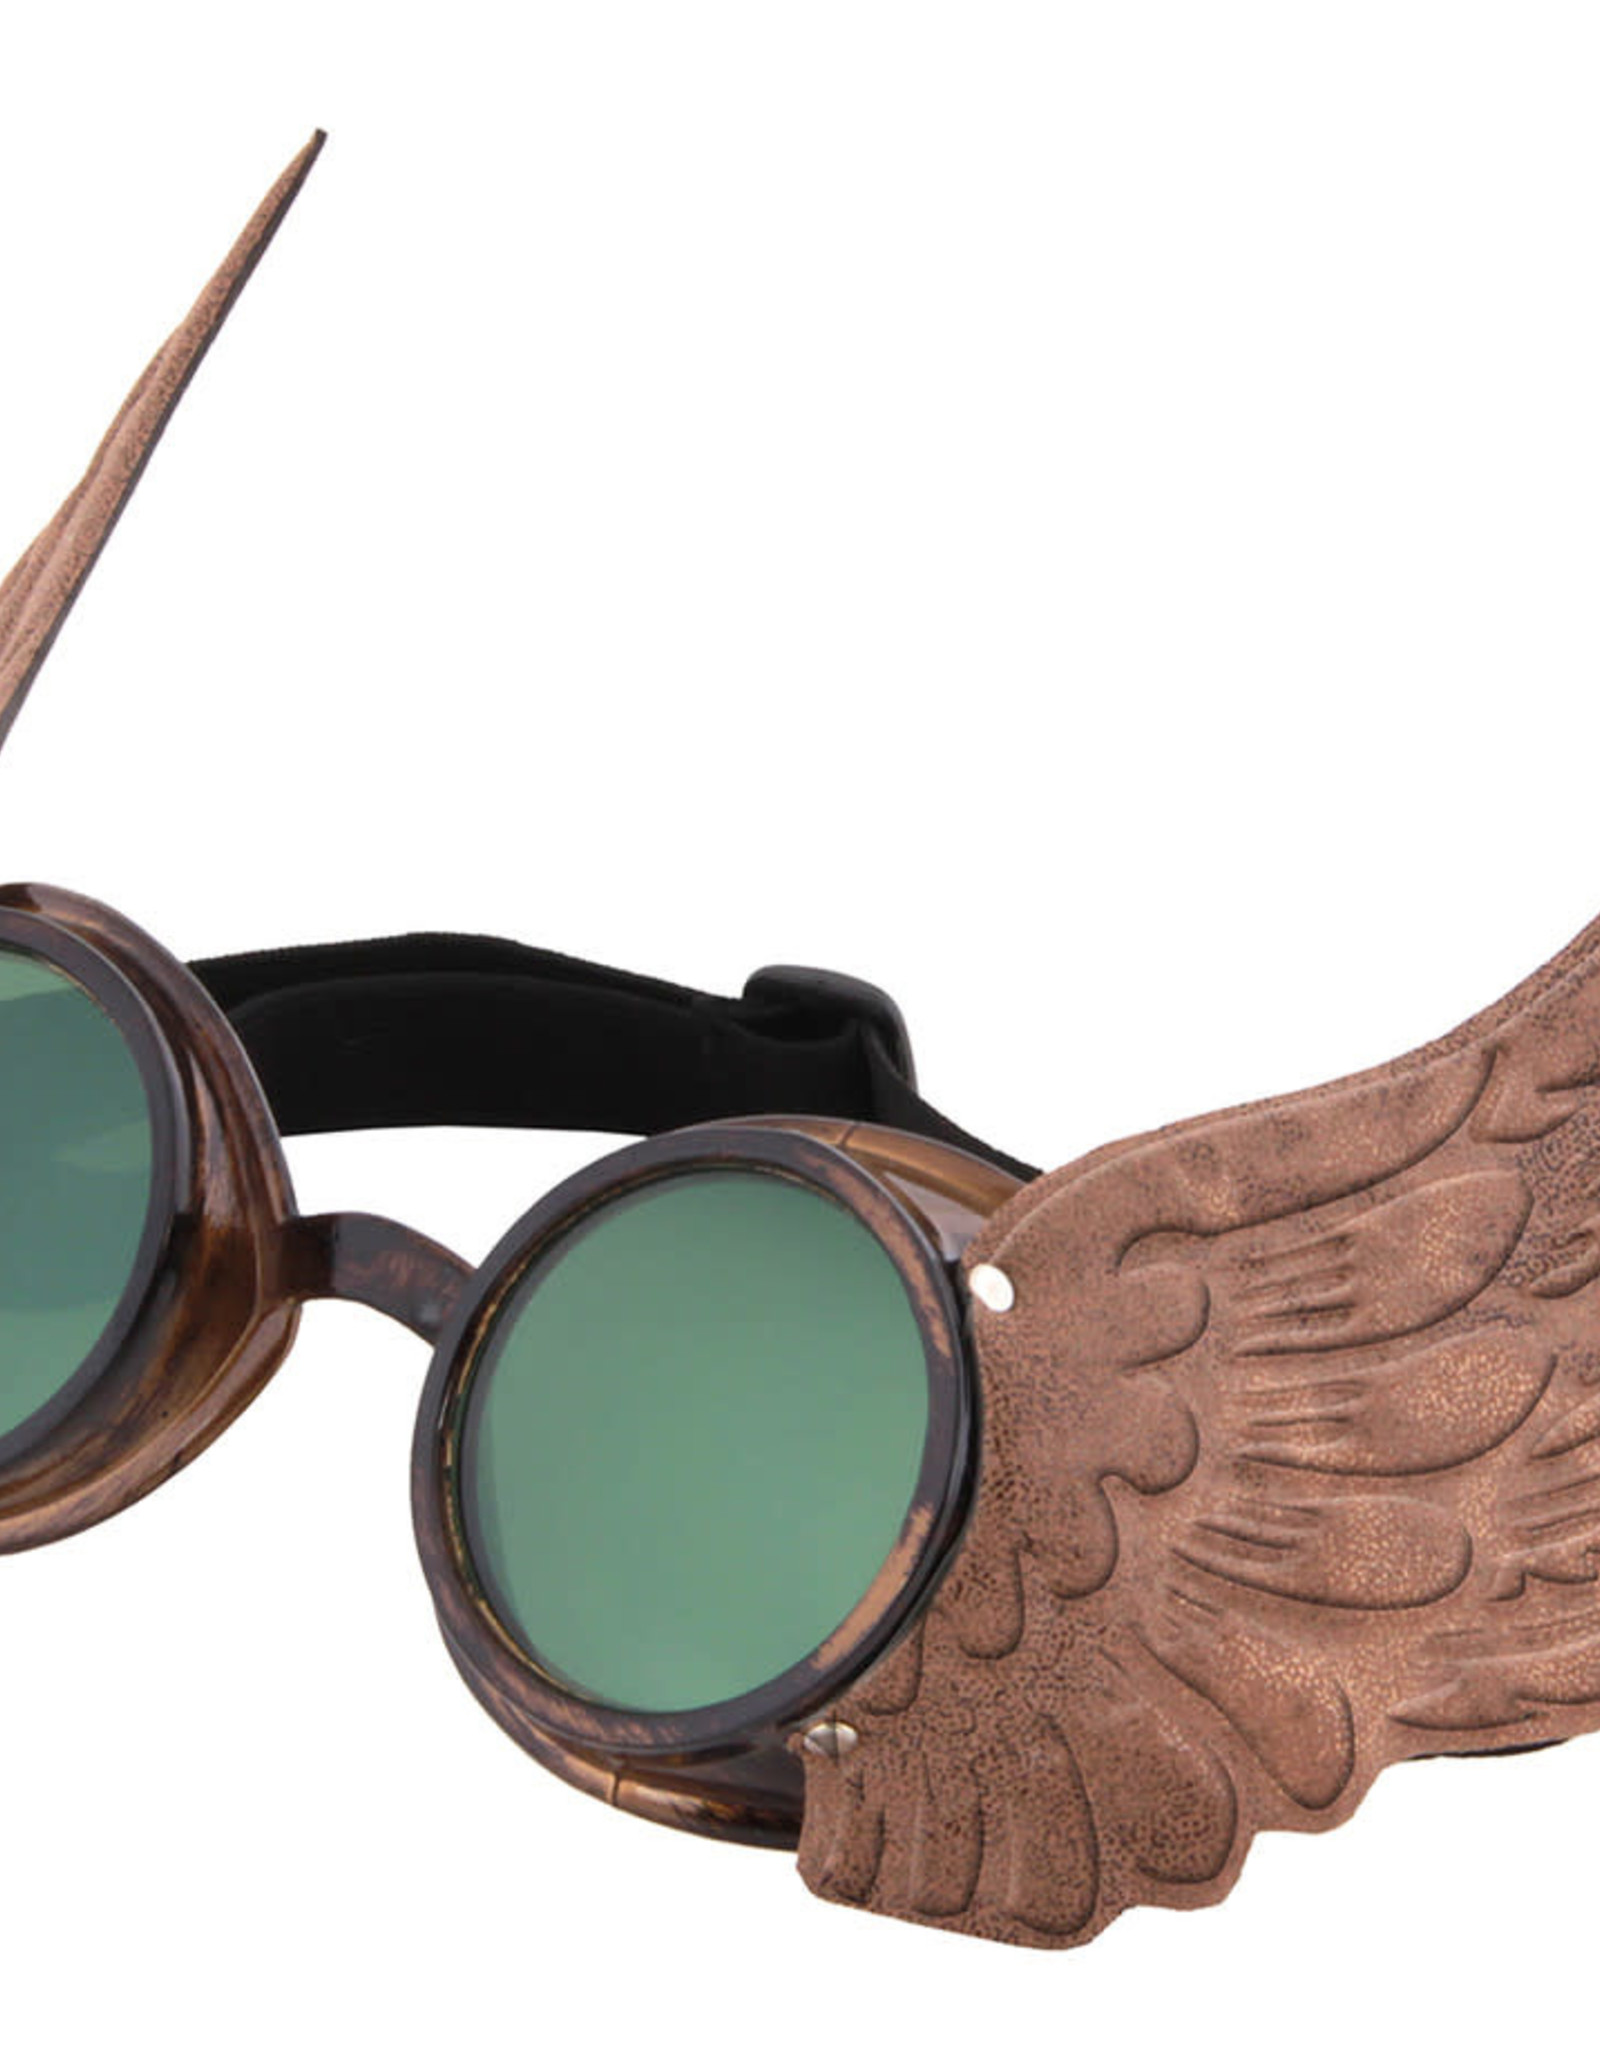 GOGGLES-WINGED, GOLD W/GRN LENS